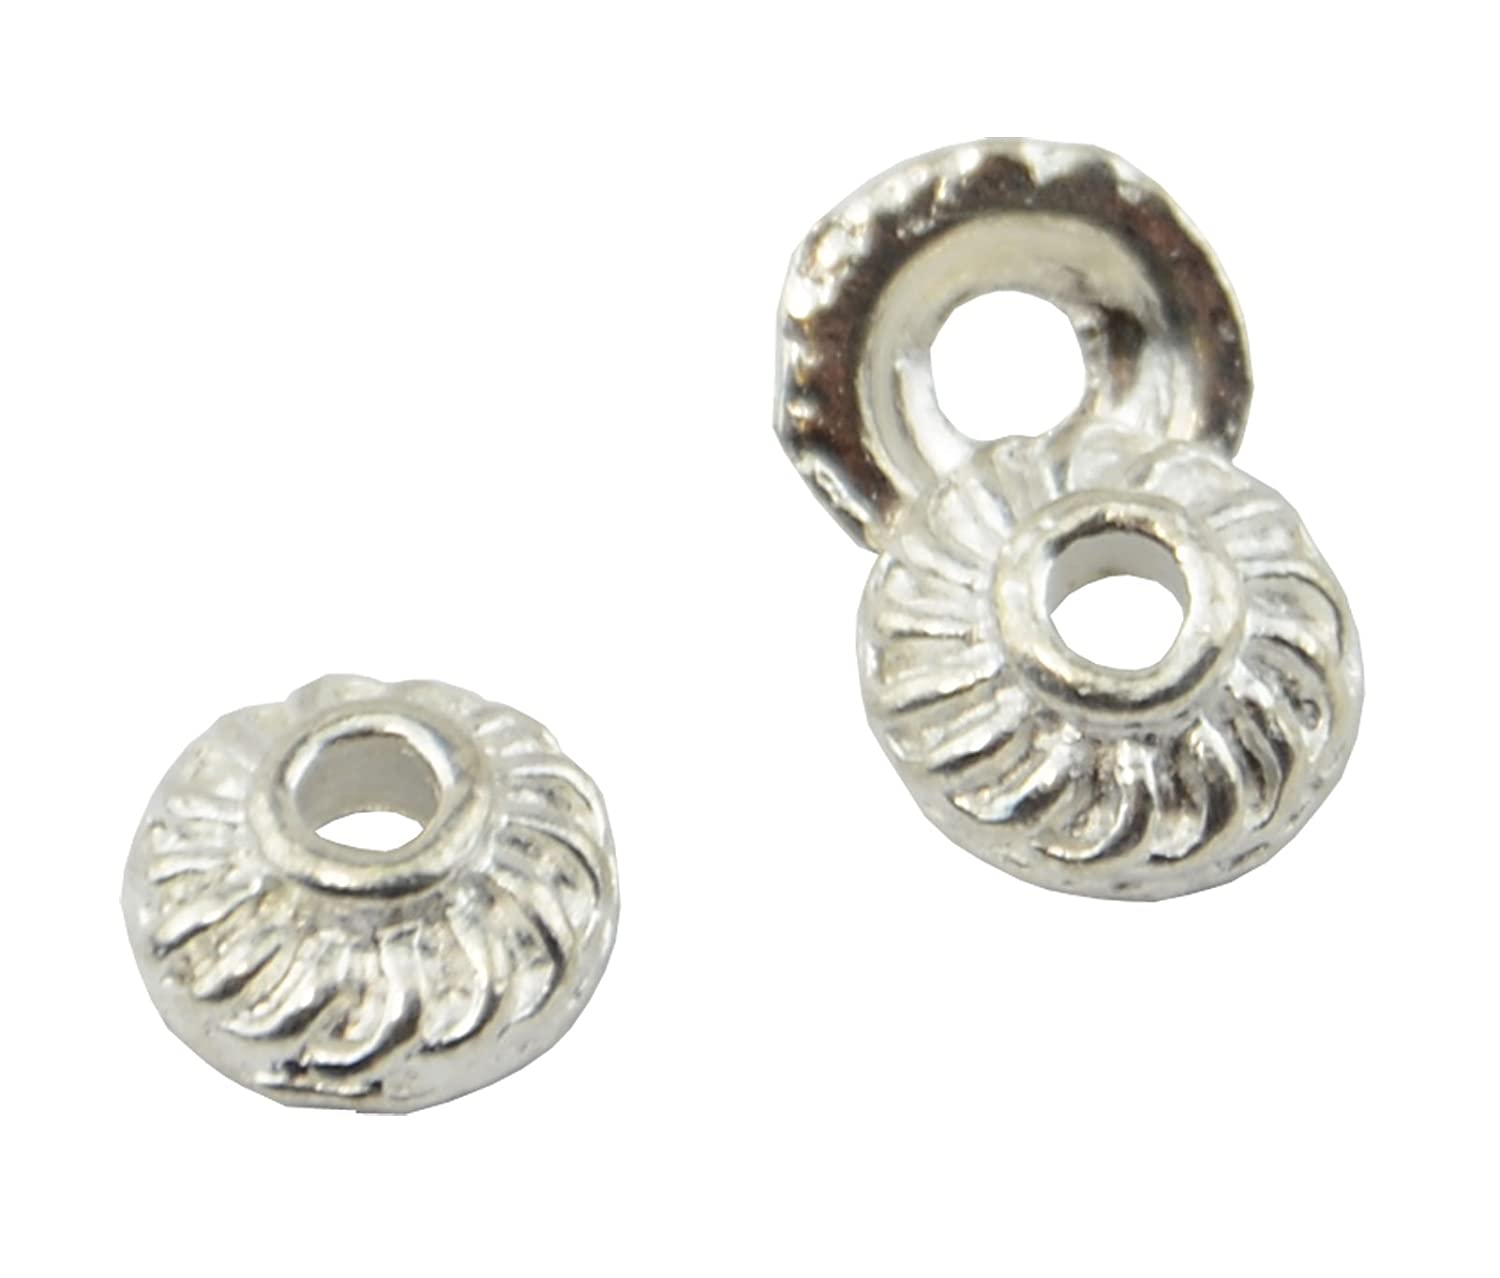 37887-155 20 Large Flower Bead Cap 16mm Silver Plated Jewellery Finding